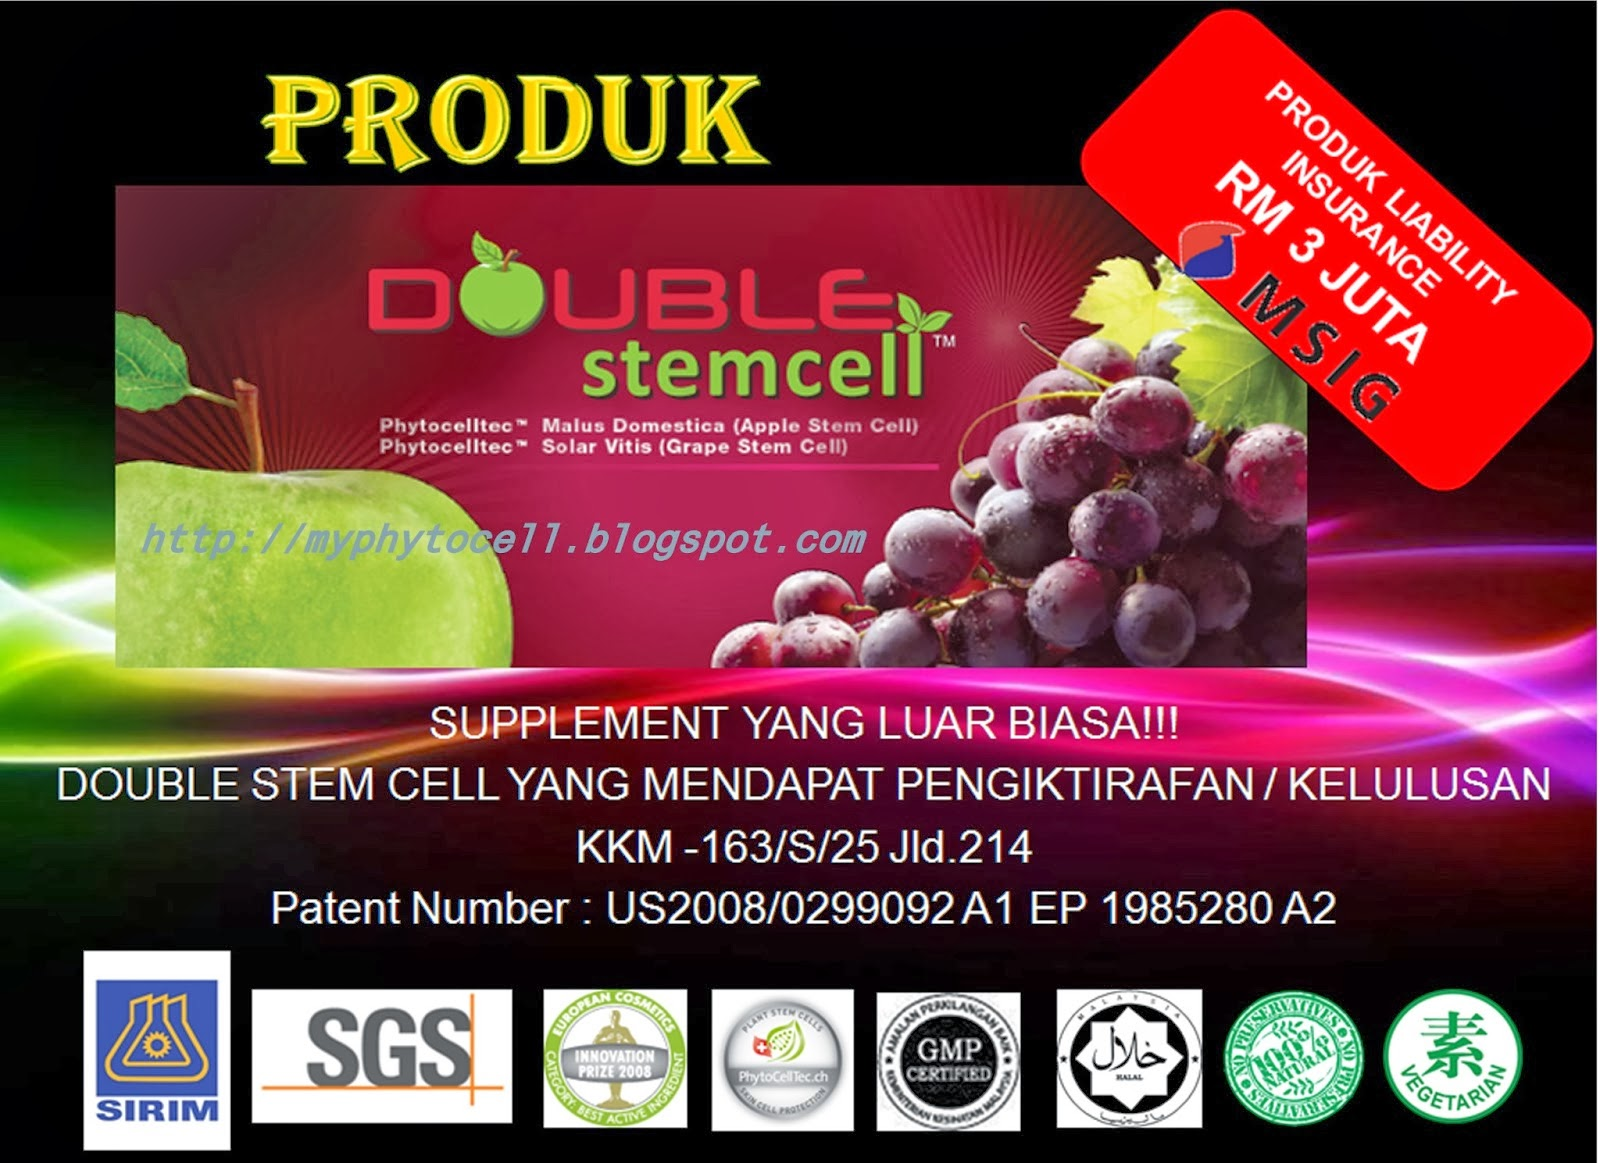 DOUBLESTEM CELL CLICK PICTURE, FREE MEMBER, INDONESIA, THAILAND, SINGAPORE & VIATNAM + DELIVERY